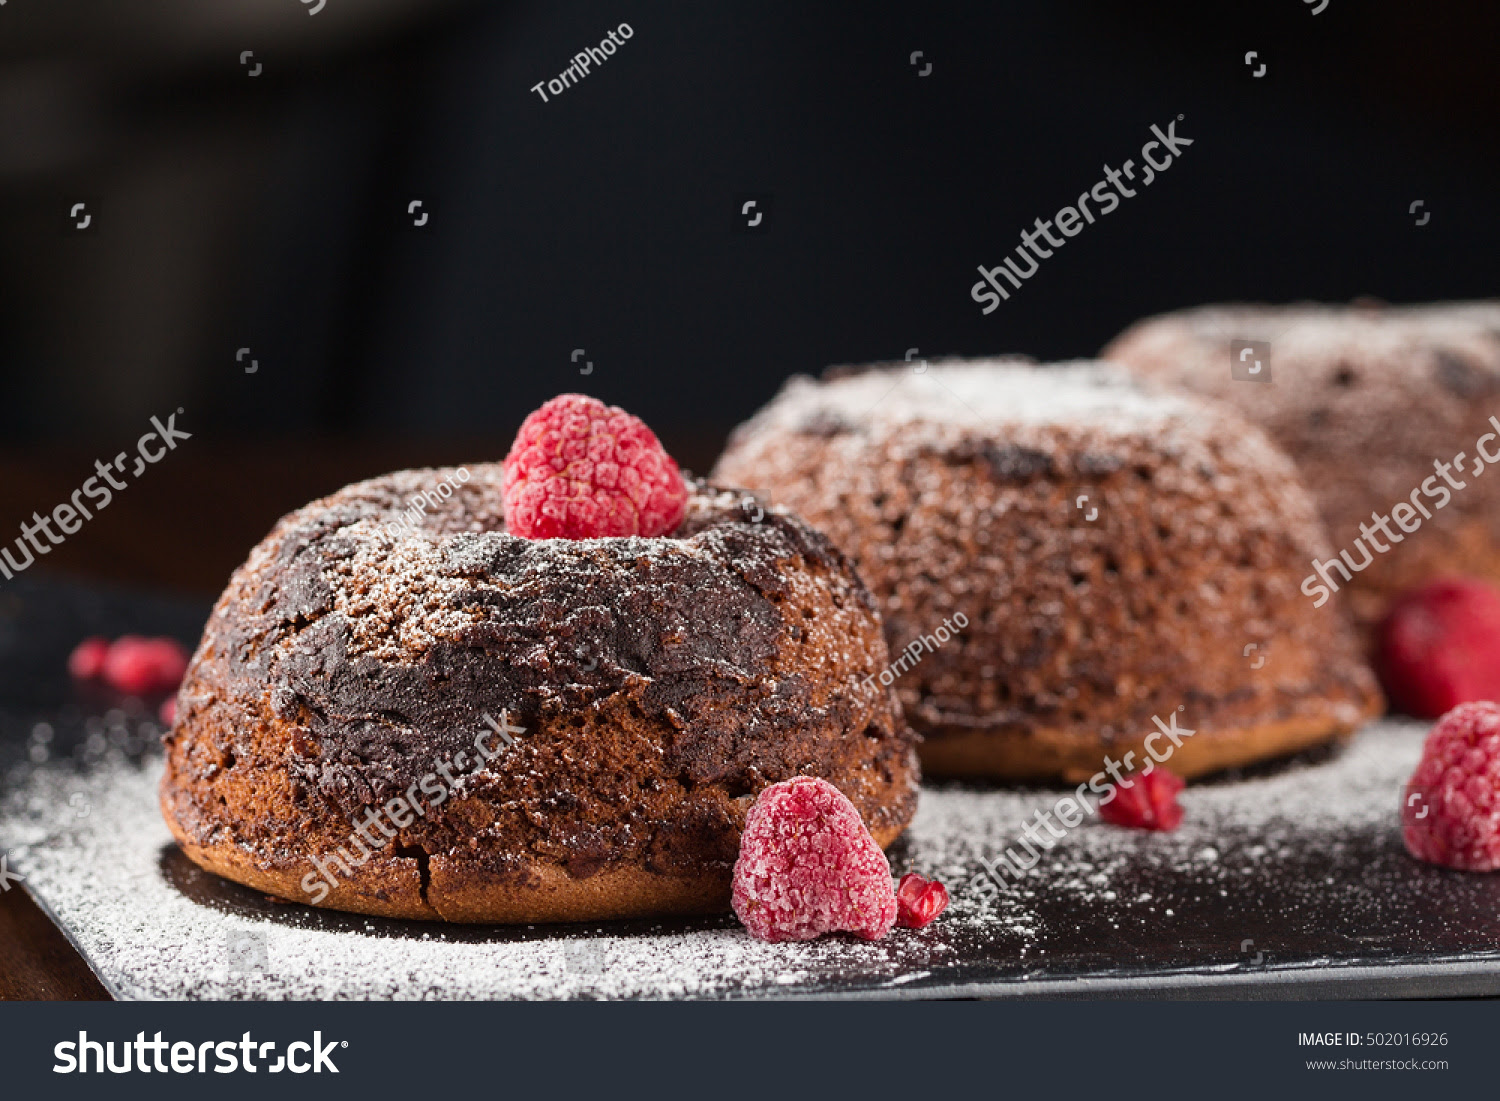 http://www.shutterstock.com/pic-502016926/stock-photo-chocolate-fondant-cake-with-raspberries-on-dark-background-shallow-focus.html